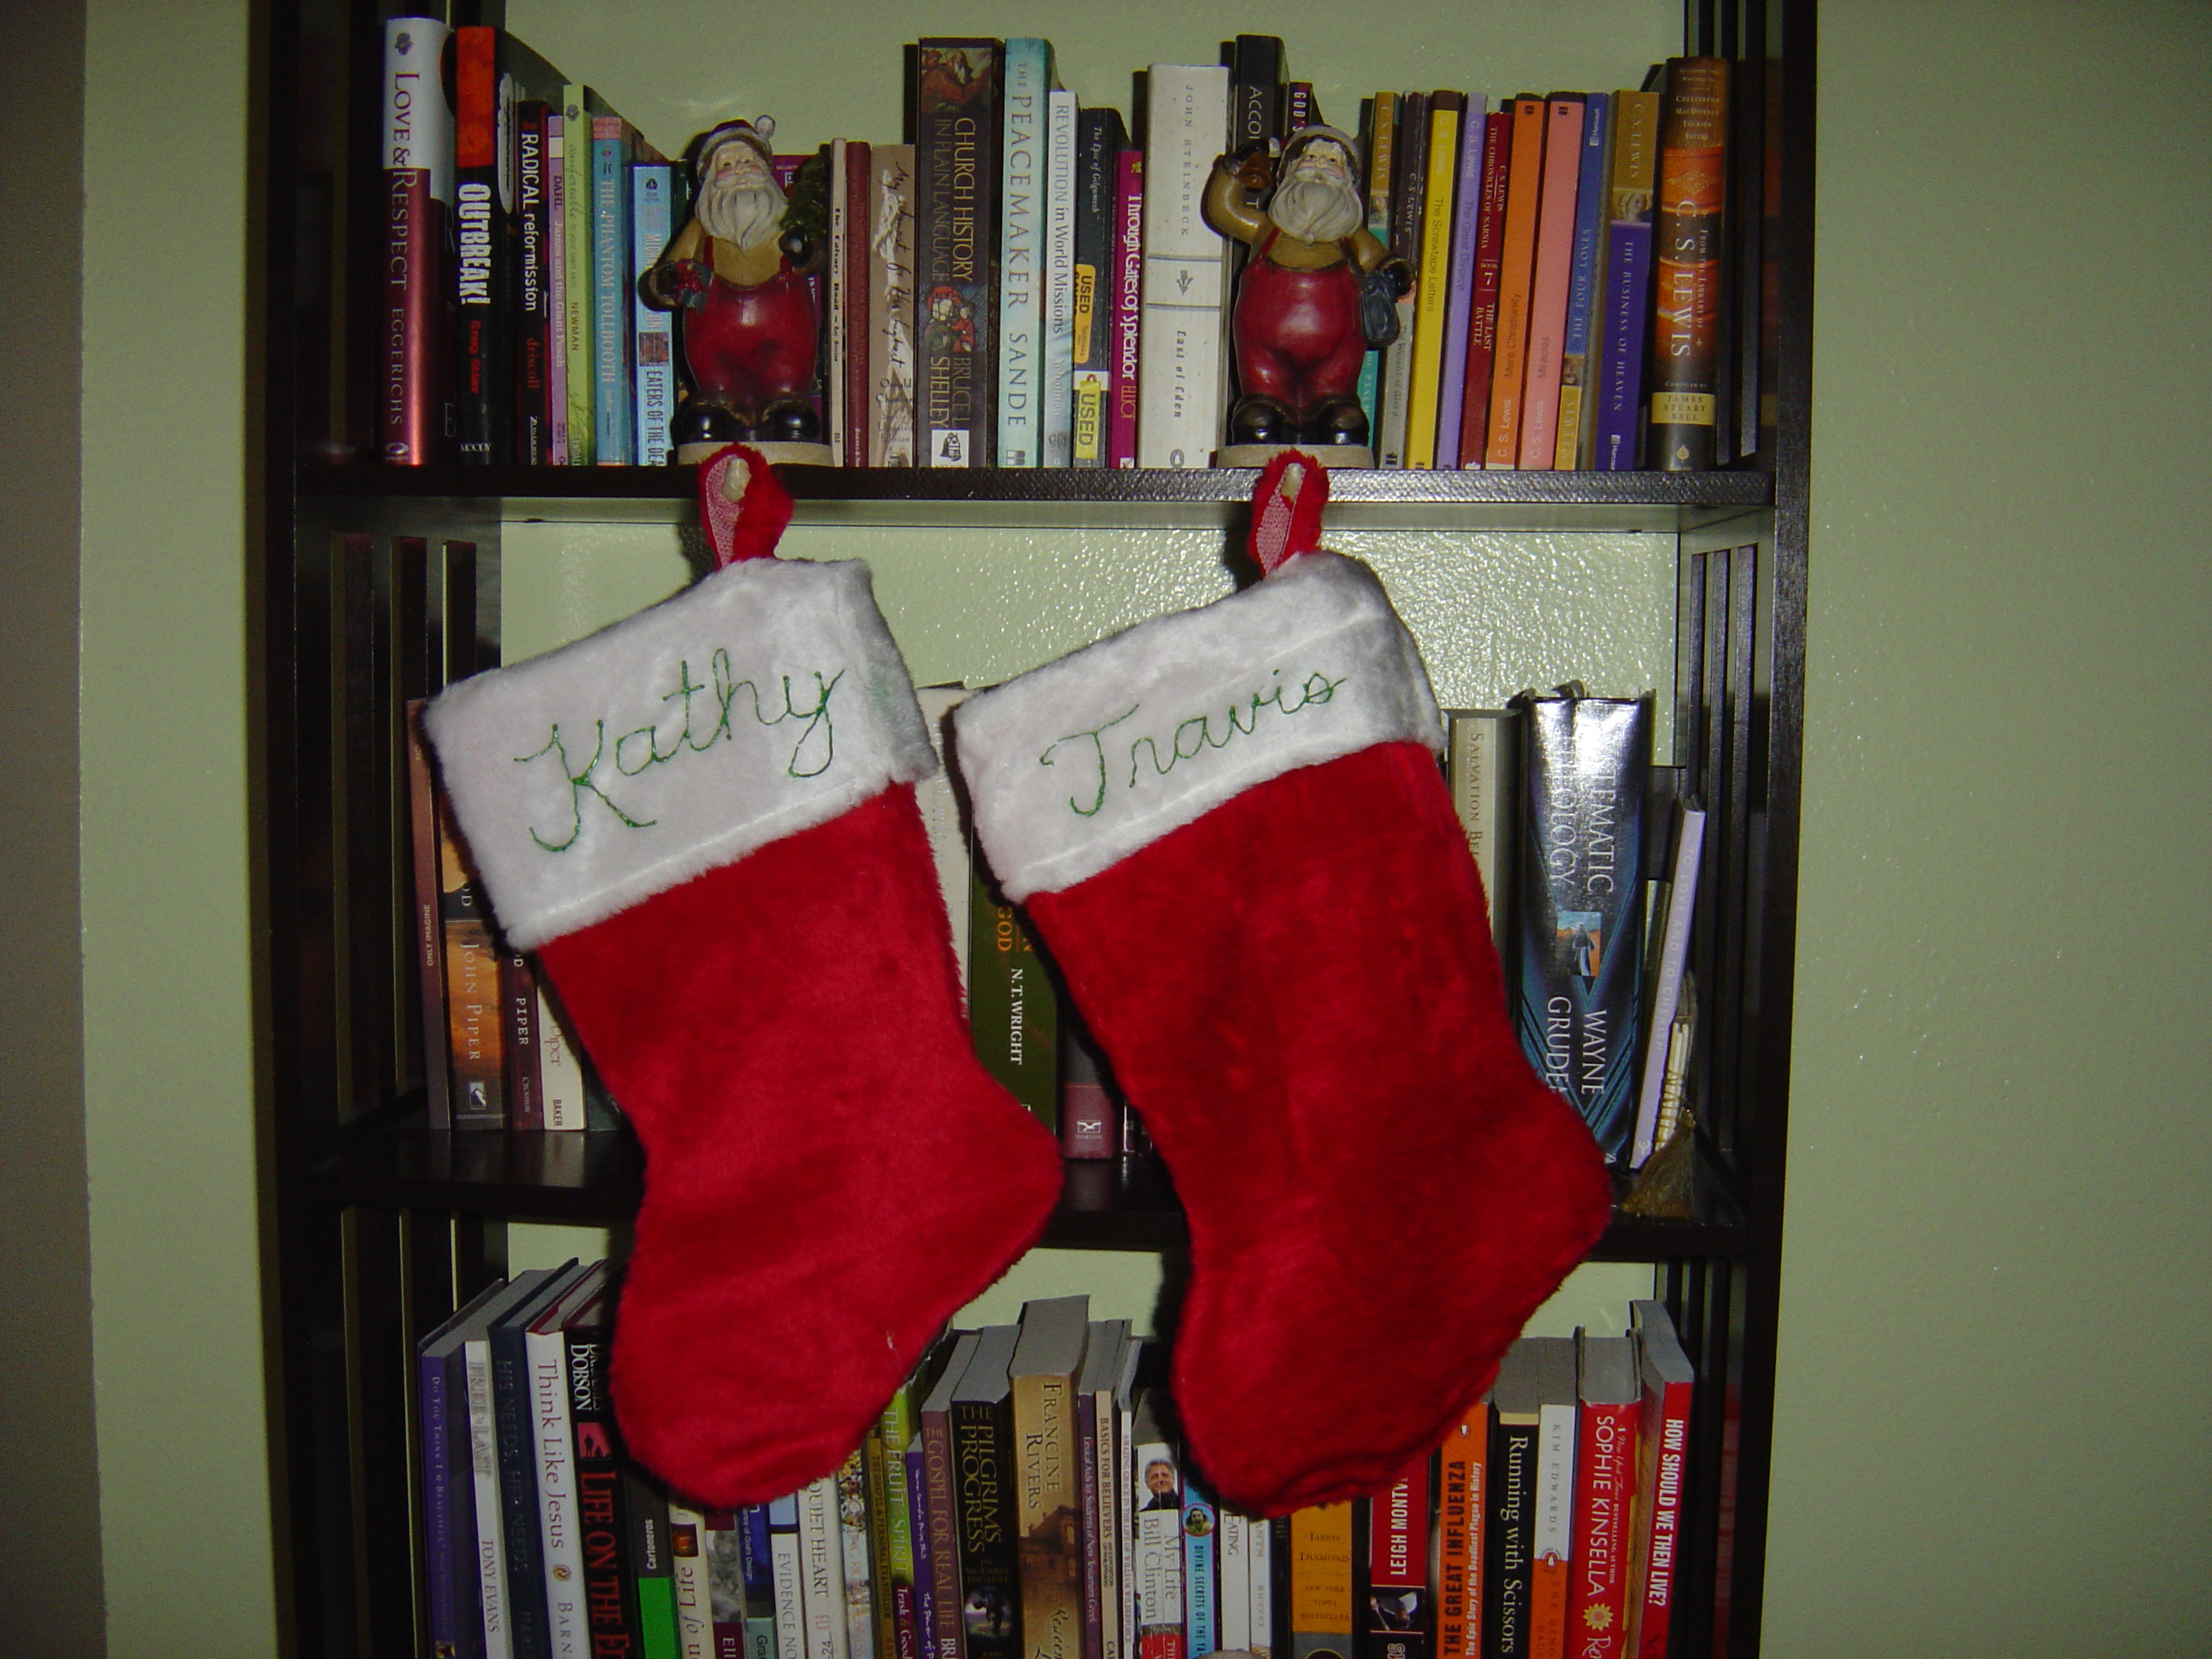 Our stockings that I decorated.